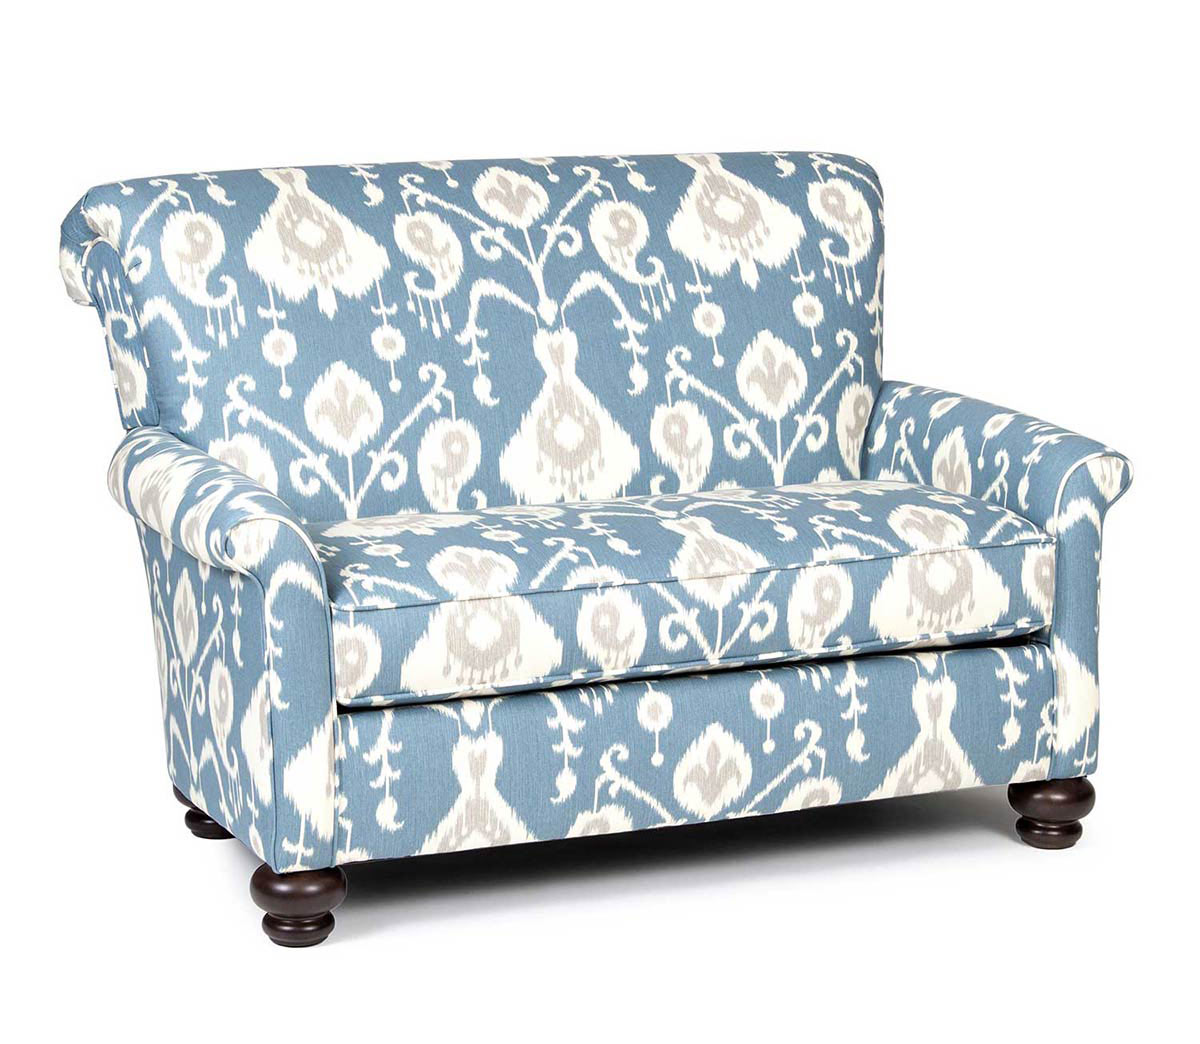 Chelsea Home Granville Chair - Blue/White